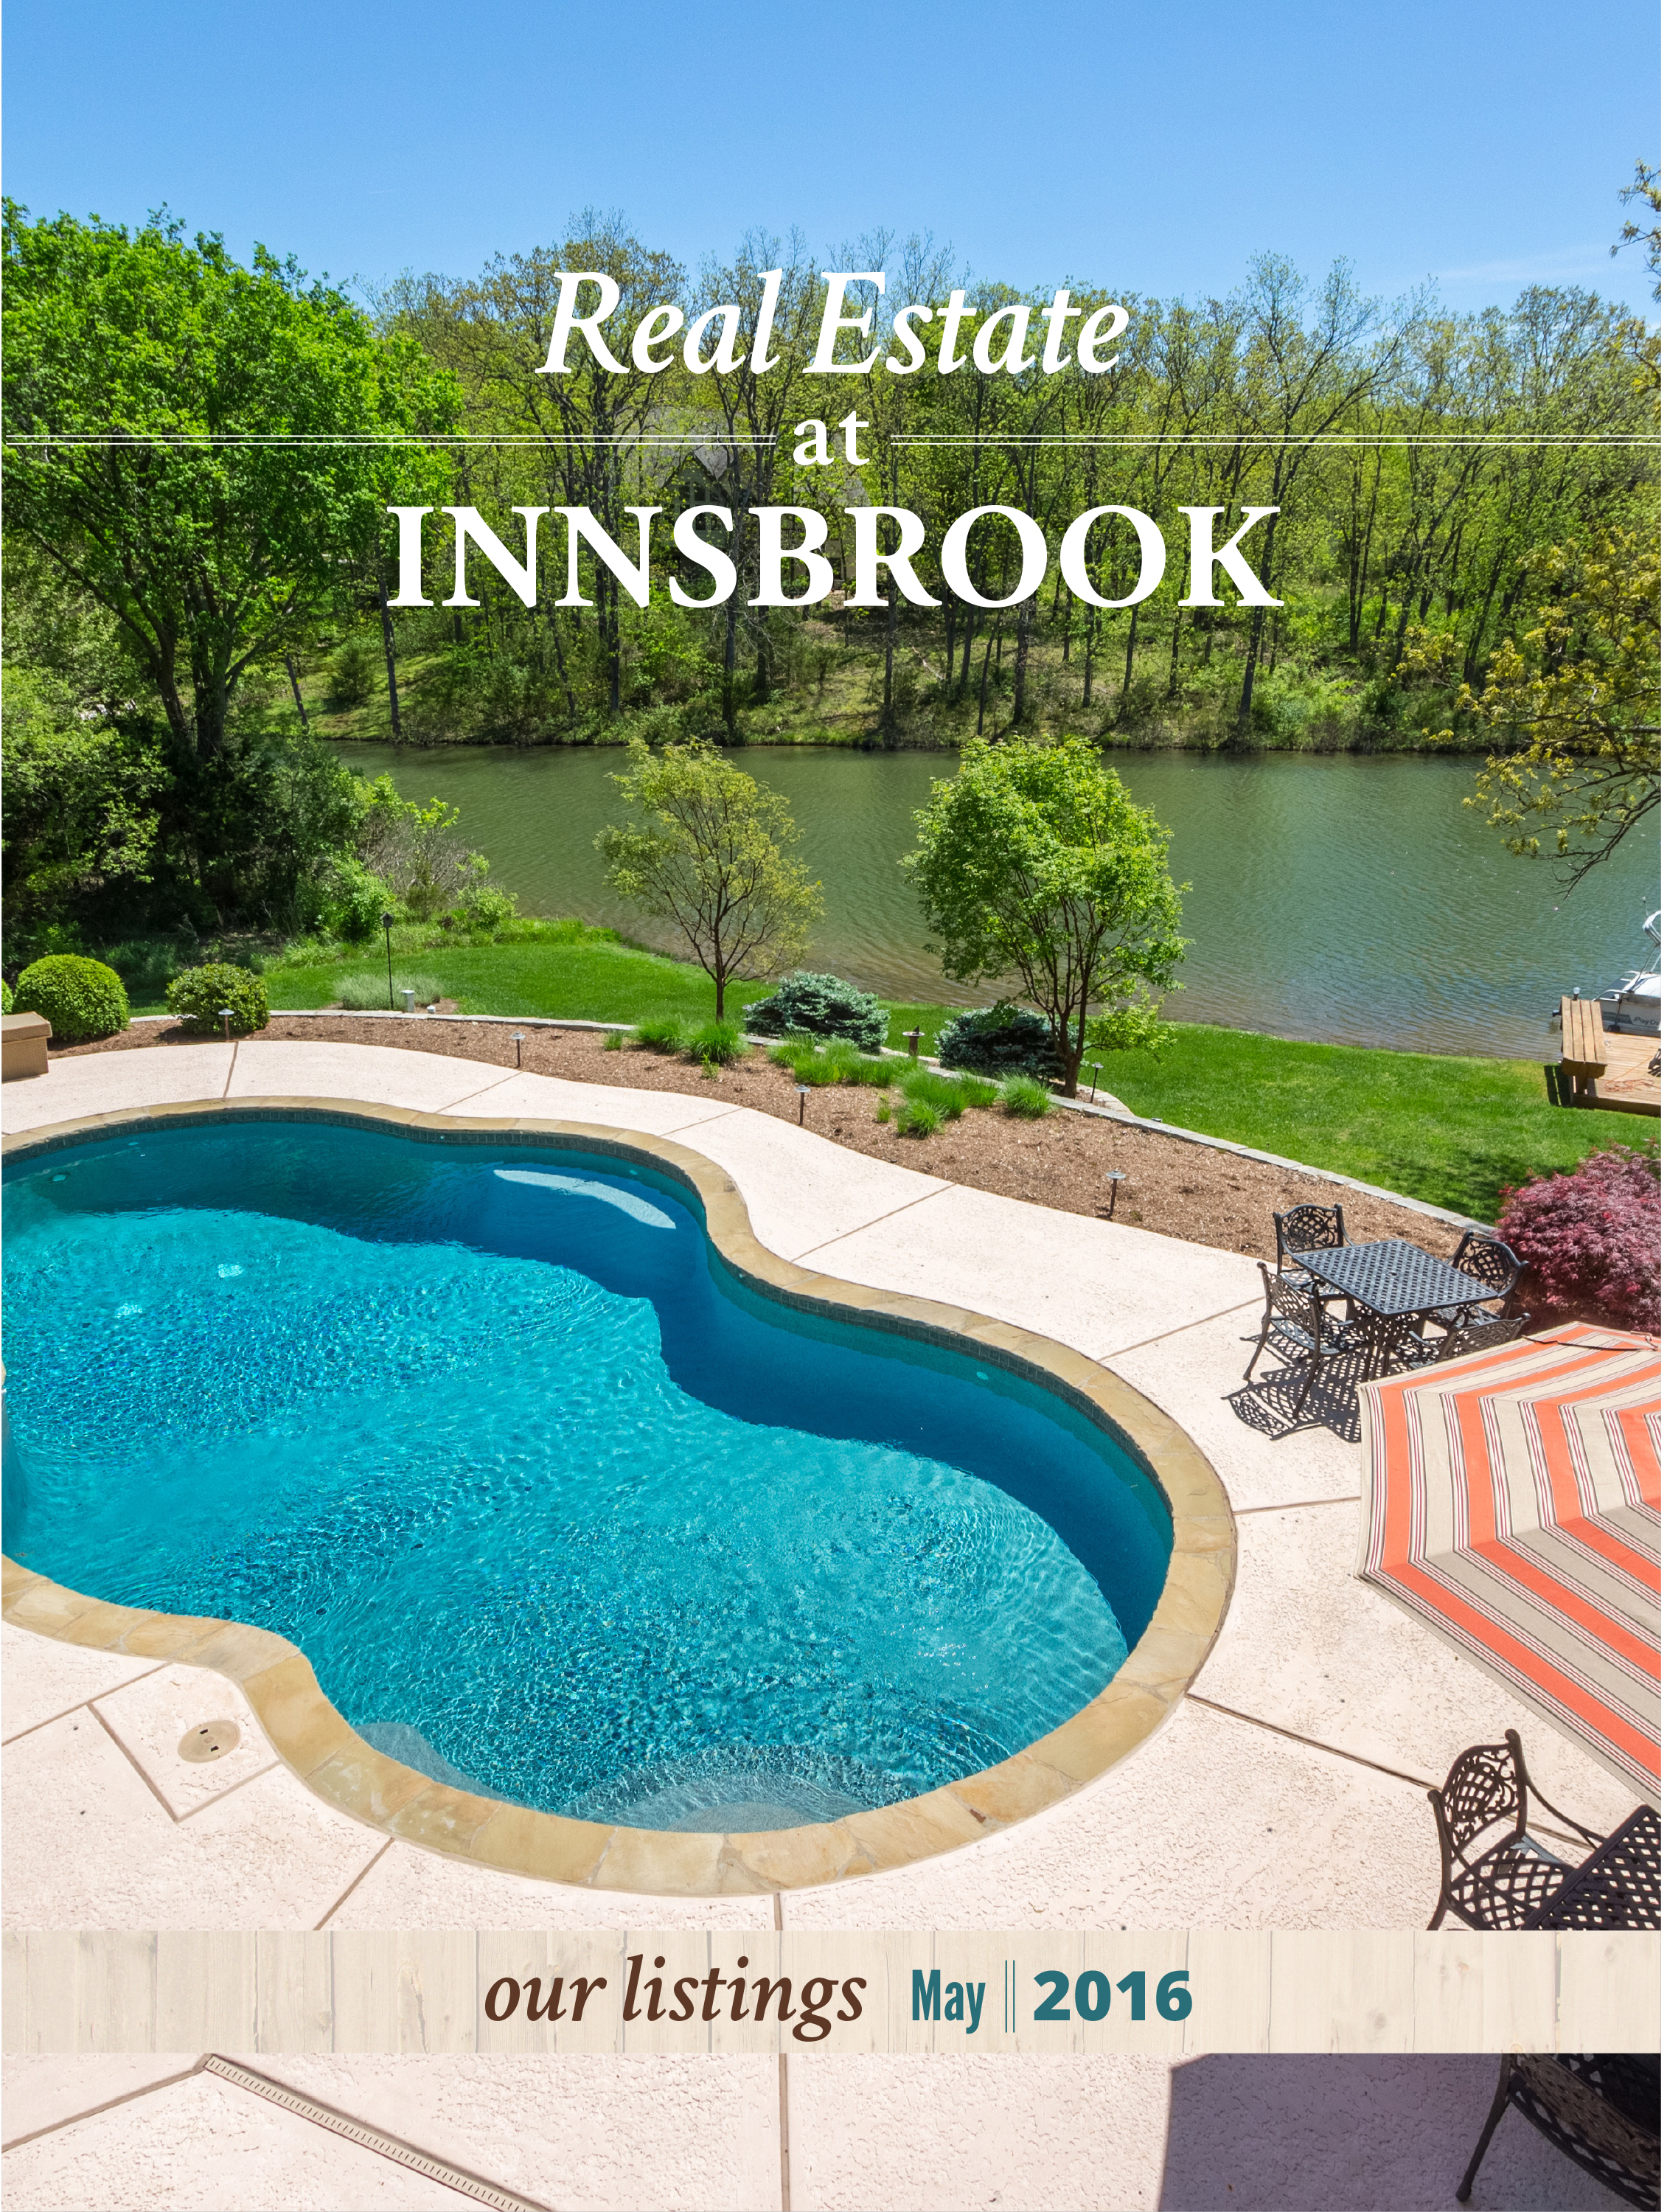 Monthly RealEstate Books - One of my major responsibilities was maintaining a monthly real estate book. This included photographing all of the newly added properties, writing the copy, laying out new pages and updating maps of the resort.